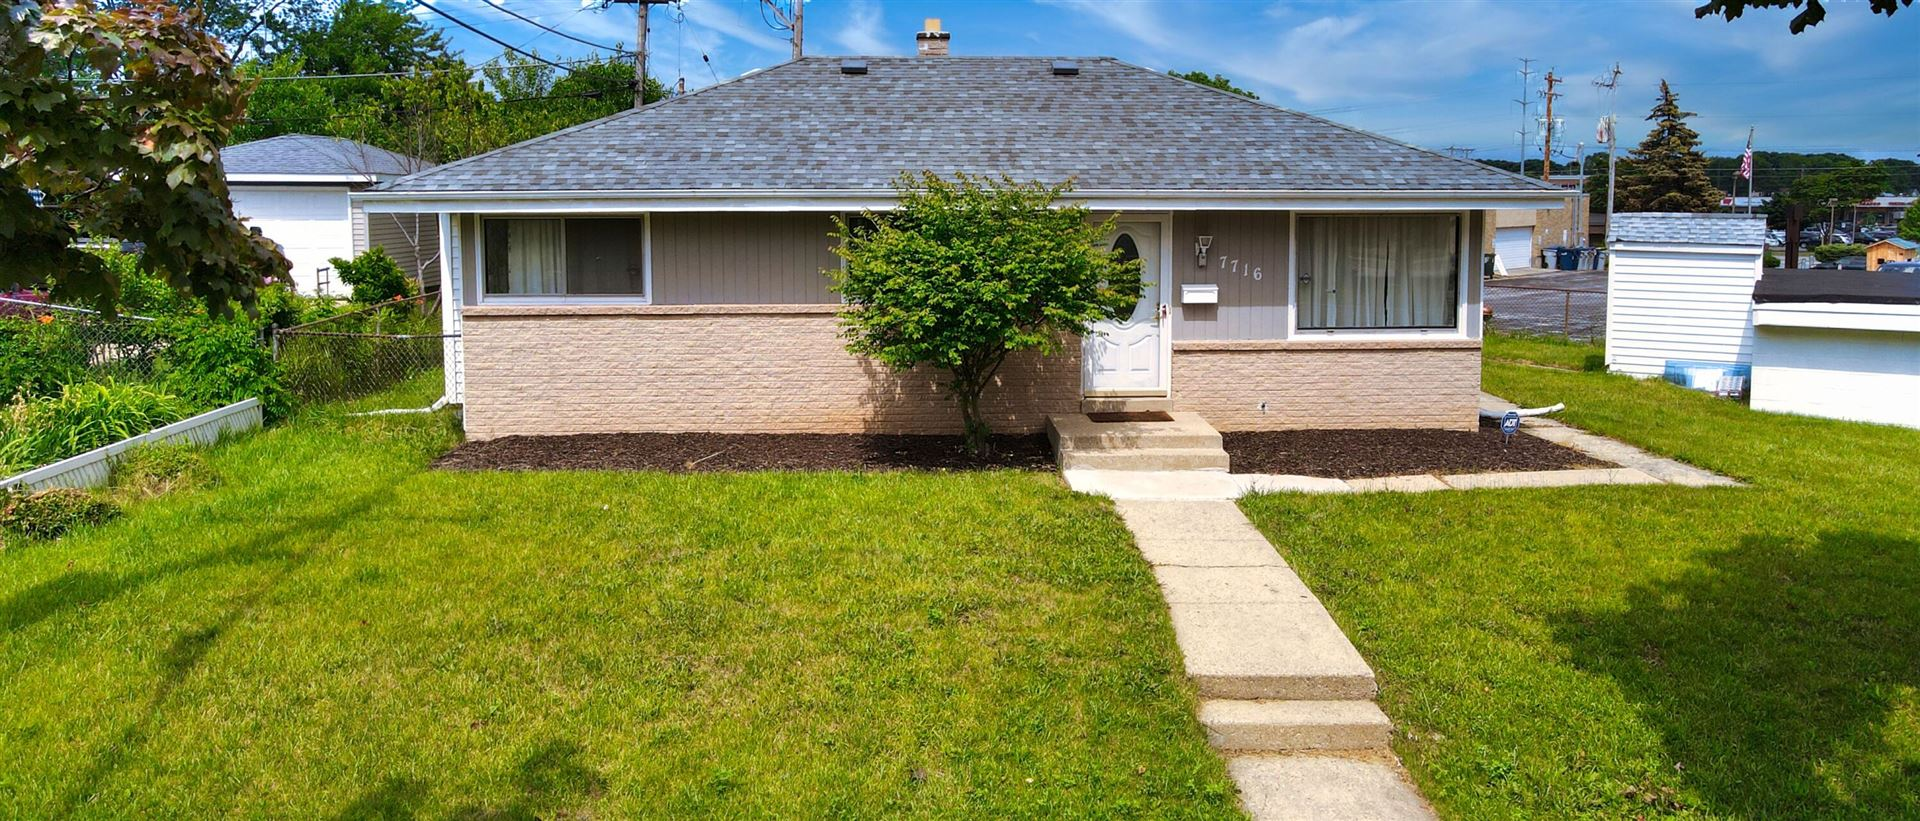 7716 W Brentwood Ave, Milwaukee, WI 53223 - #: 1767157